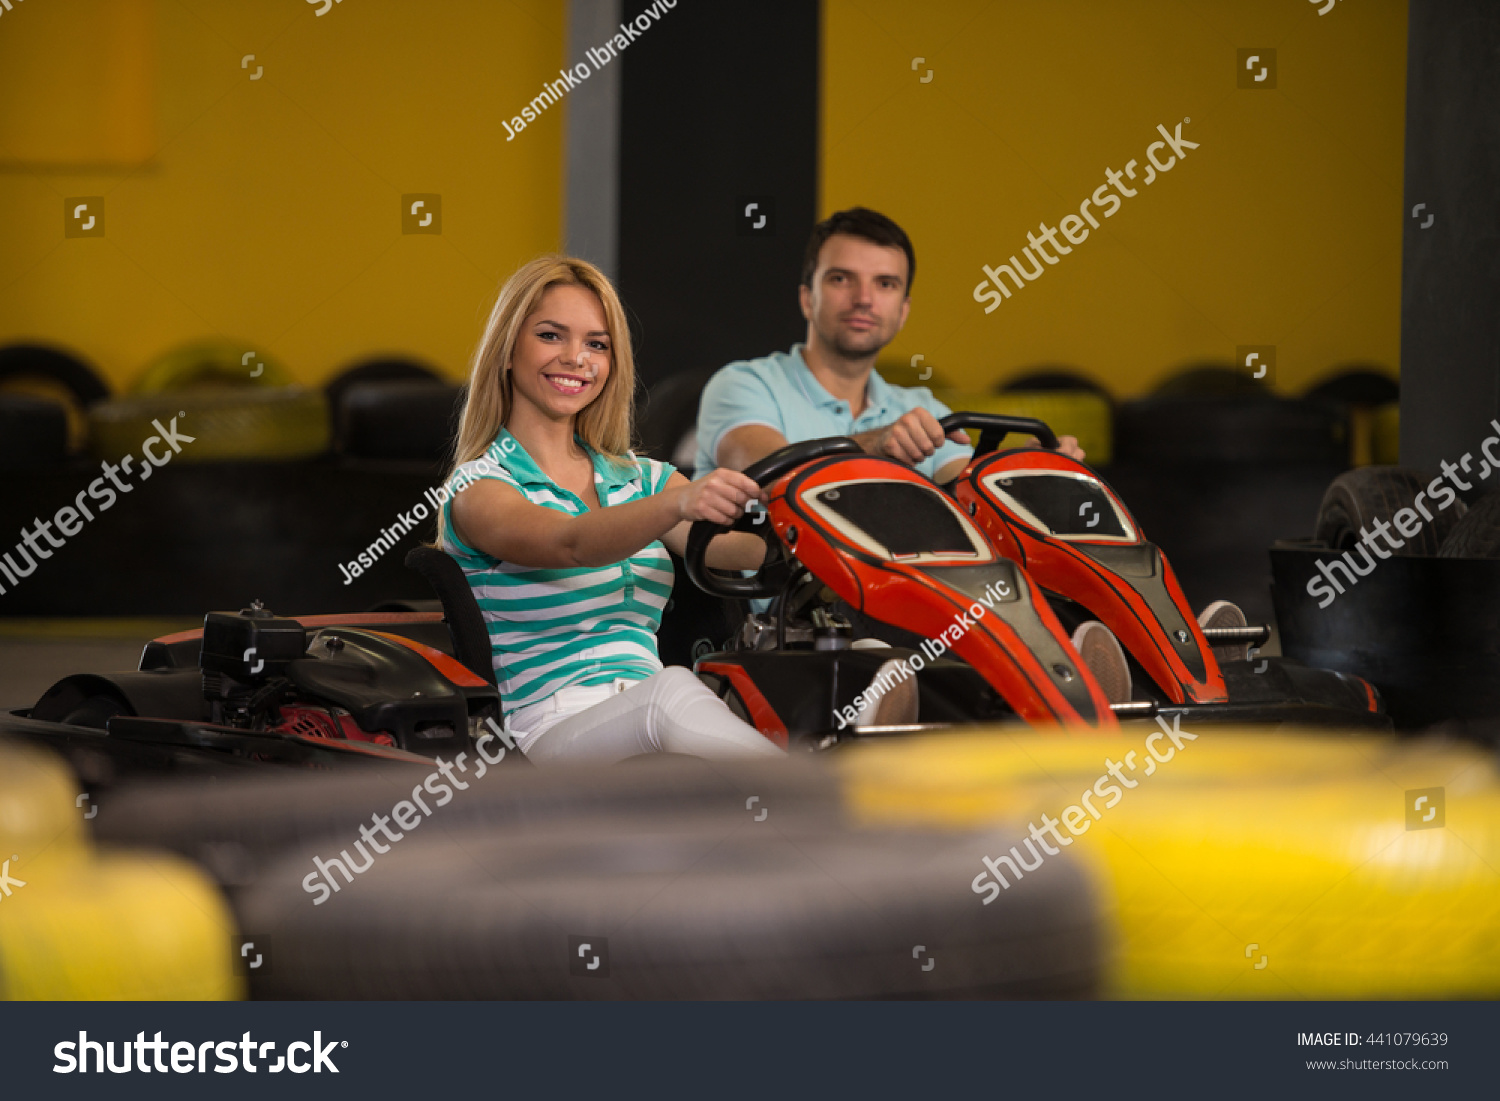 Group Of People Is Driving Go-Kart Car With Speed In A Playground Racing Track Go Kart Is A Popular Leisure Motor Sports